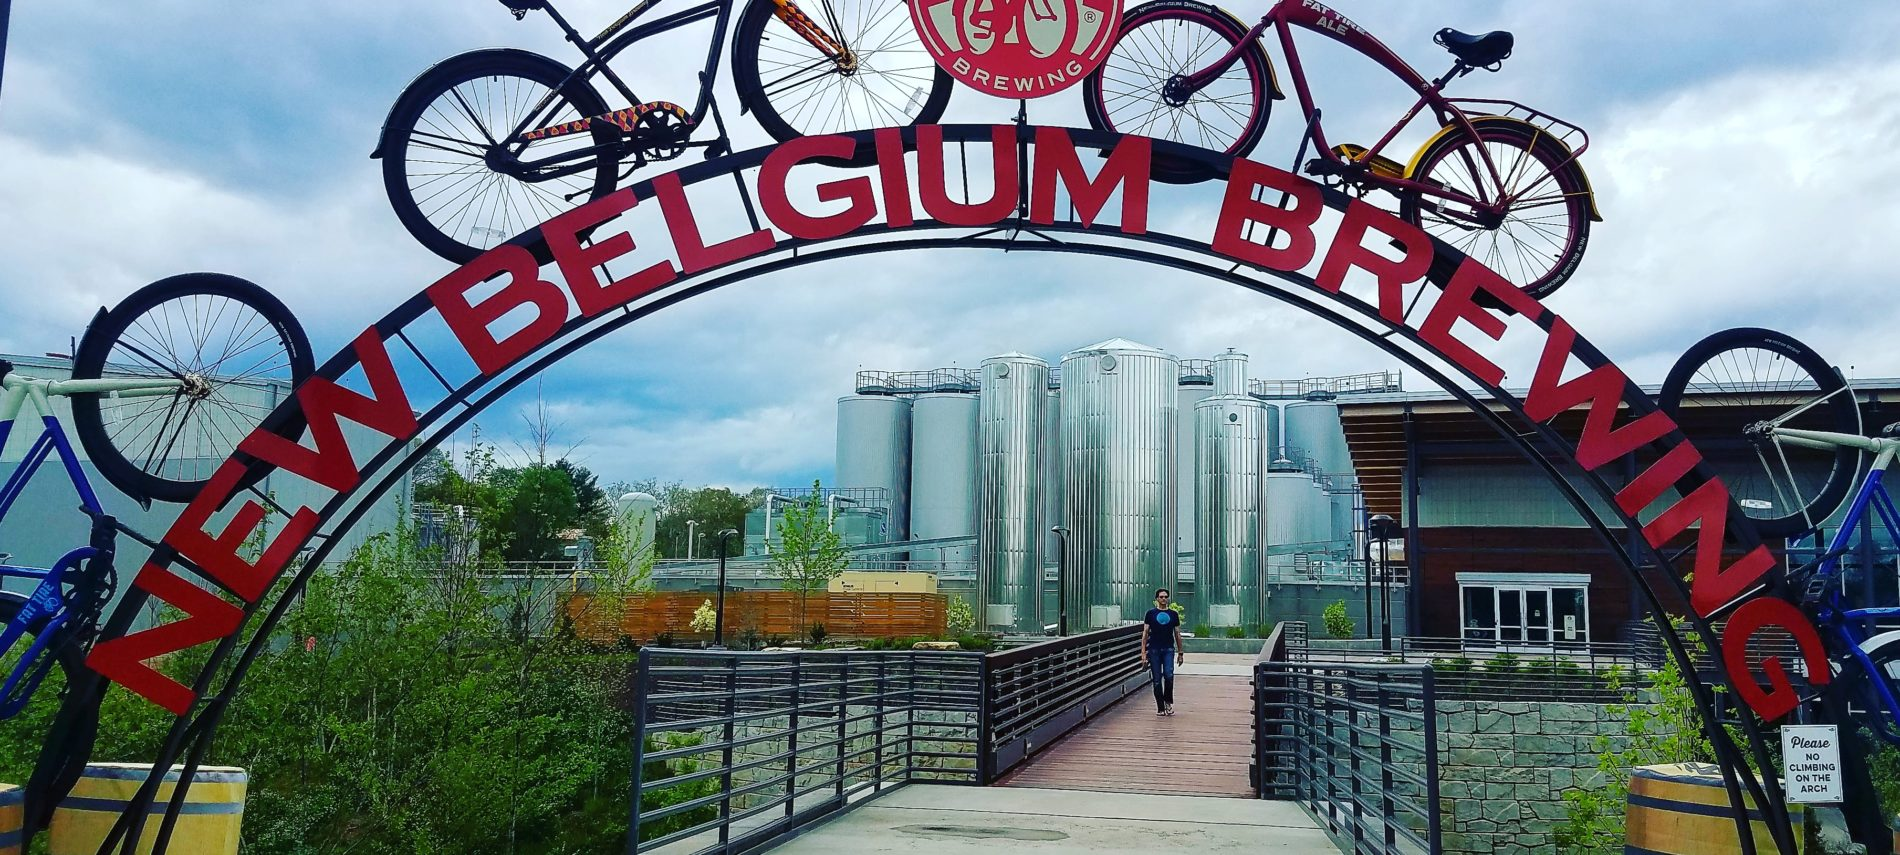 New Belgium Brewery sign and gateway